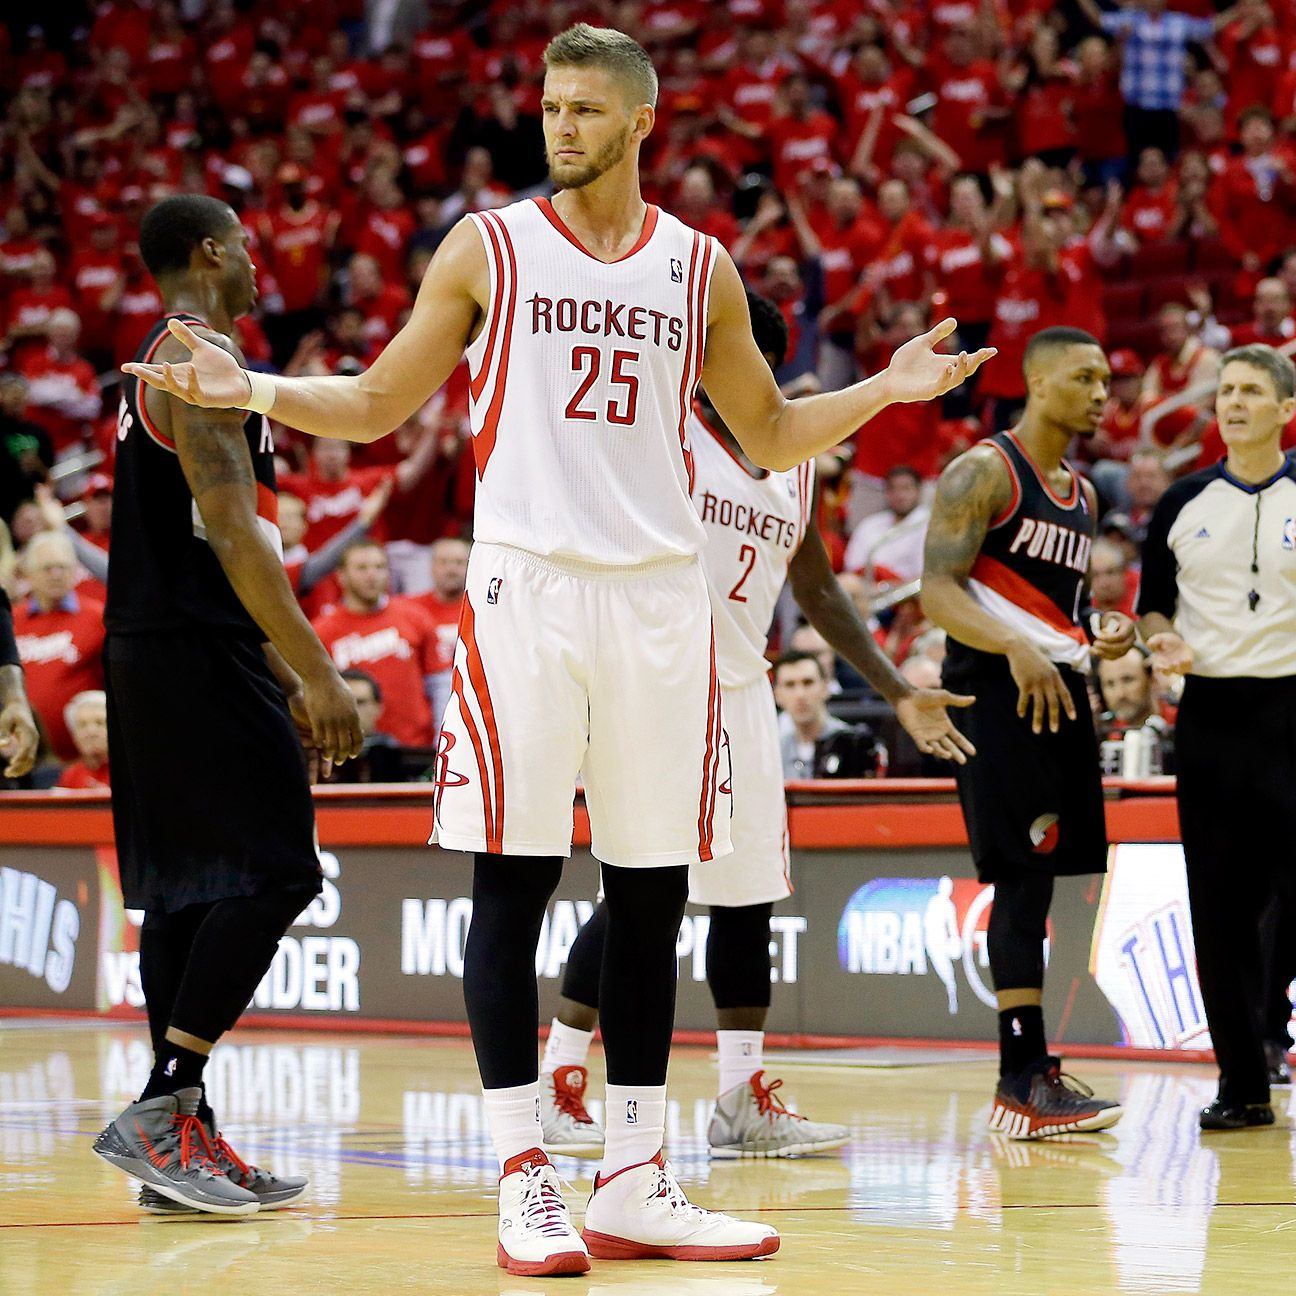 Houston Rockets Where To Watch The Upcoming Match Espn: Houston Rockets Decline To Match Dallas Mavericks Offer